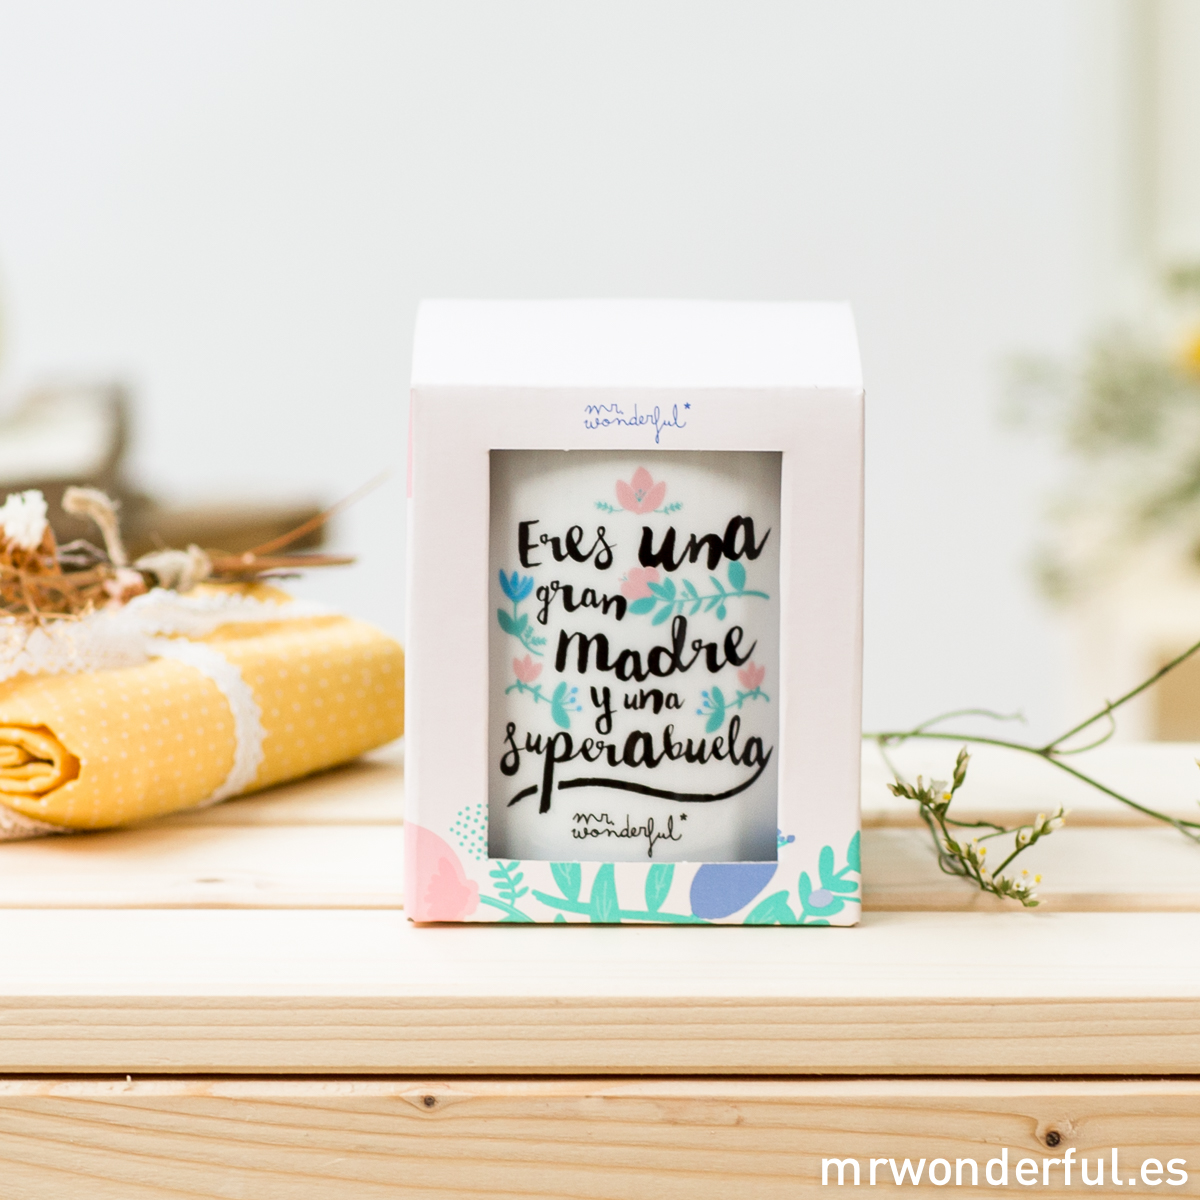 mrwonderful_8436547190379_WON-169A_Taza-gran-madre-superabuela-CAST-7